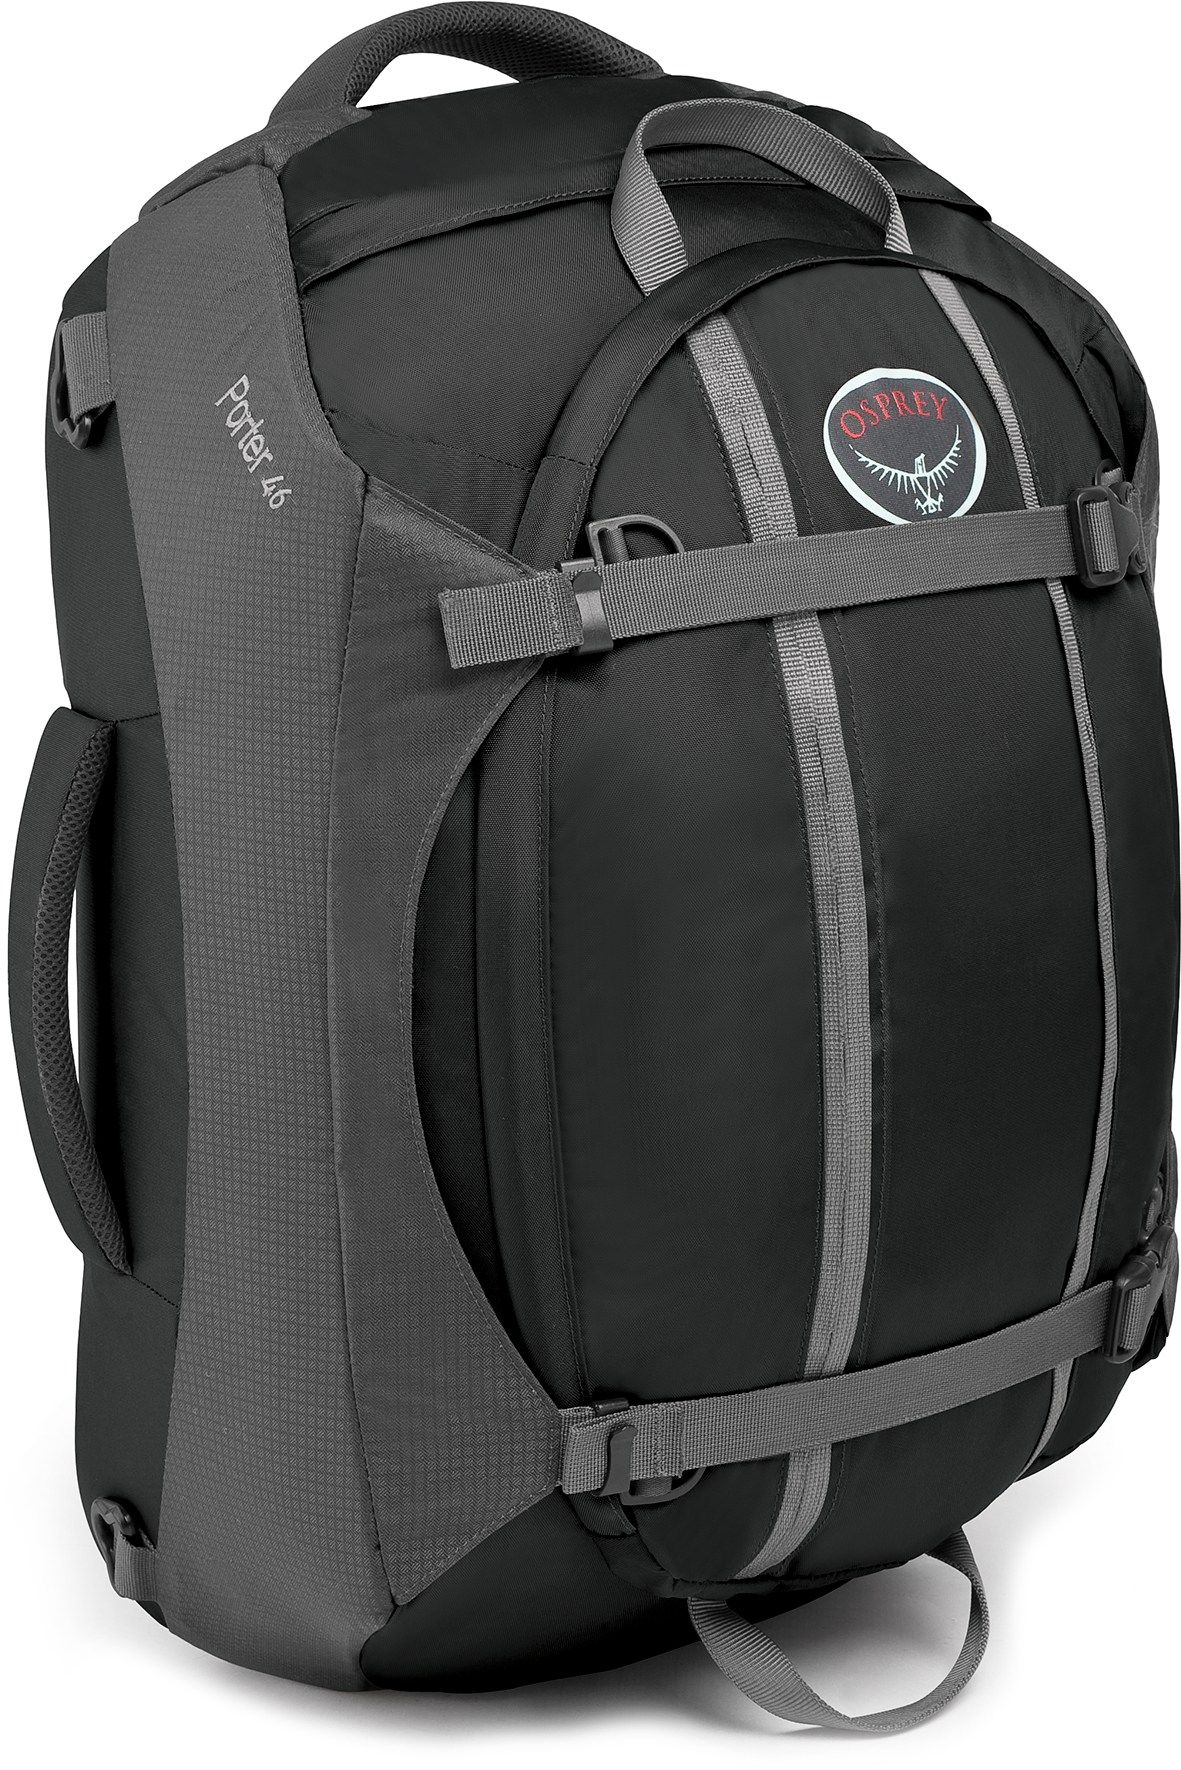 Osprey Porter 46 Backpack | Backpacking Europe | Pinterest ...